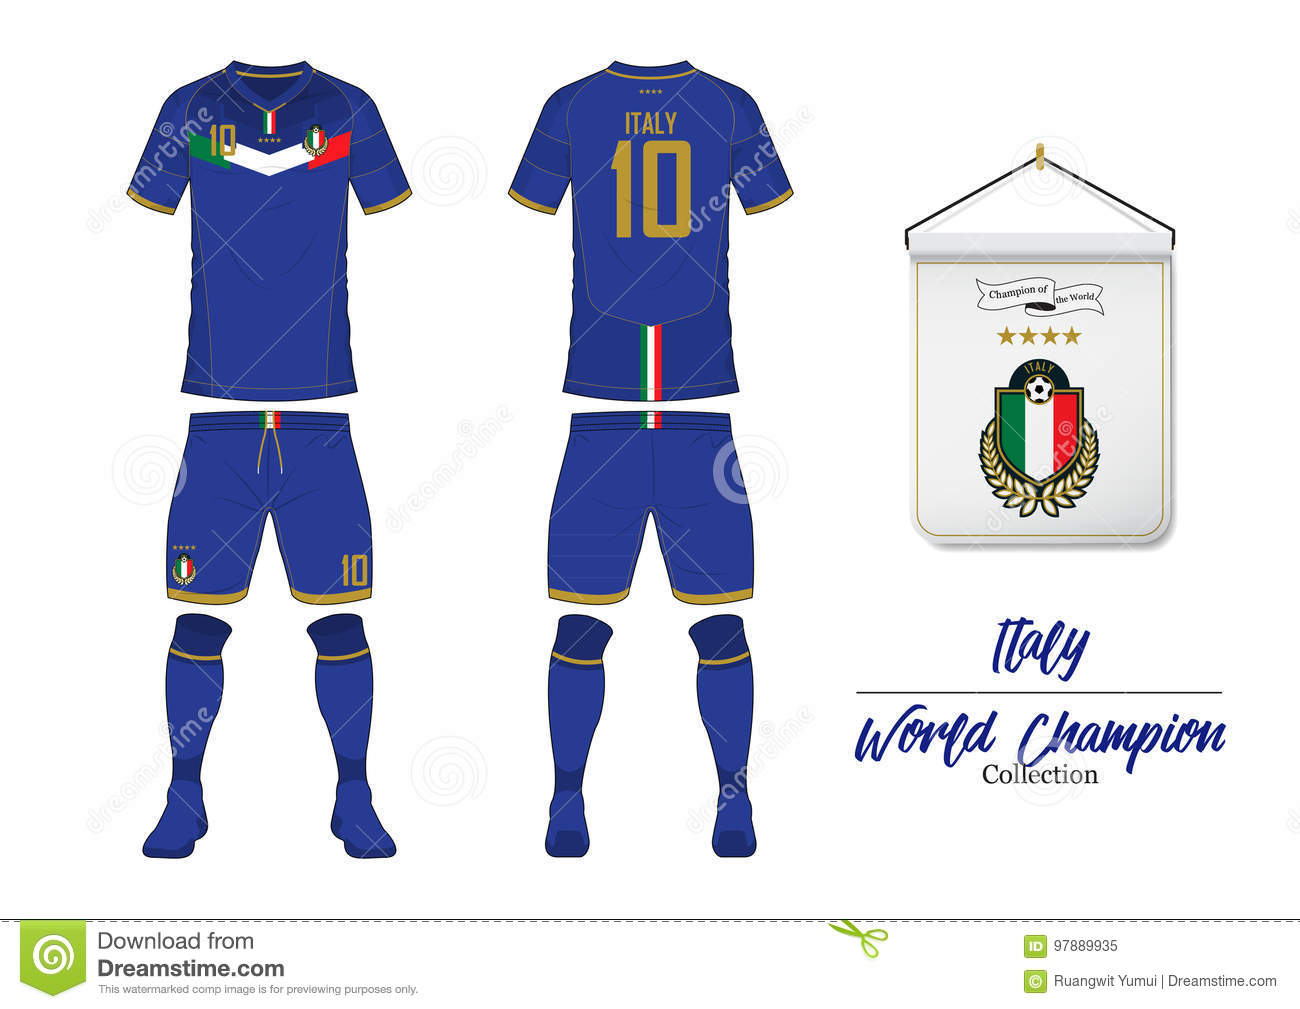 e50dc76d273 Soccer jersey or football kit. Italy football national team. Football logo  with house flag. Front and rear view soccer uniform.